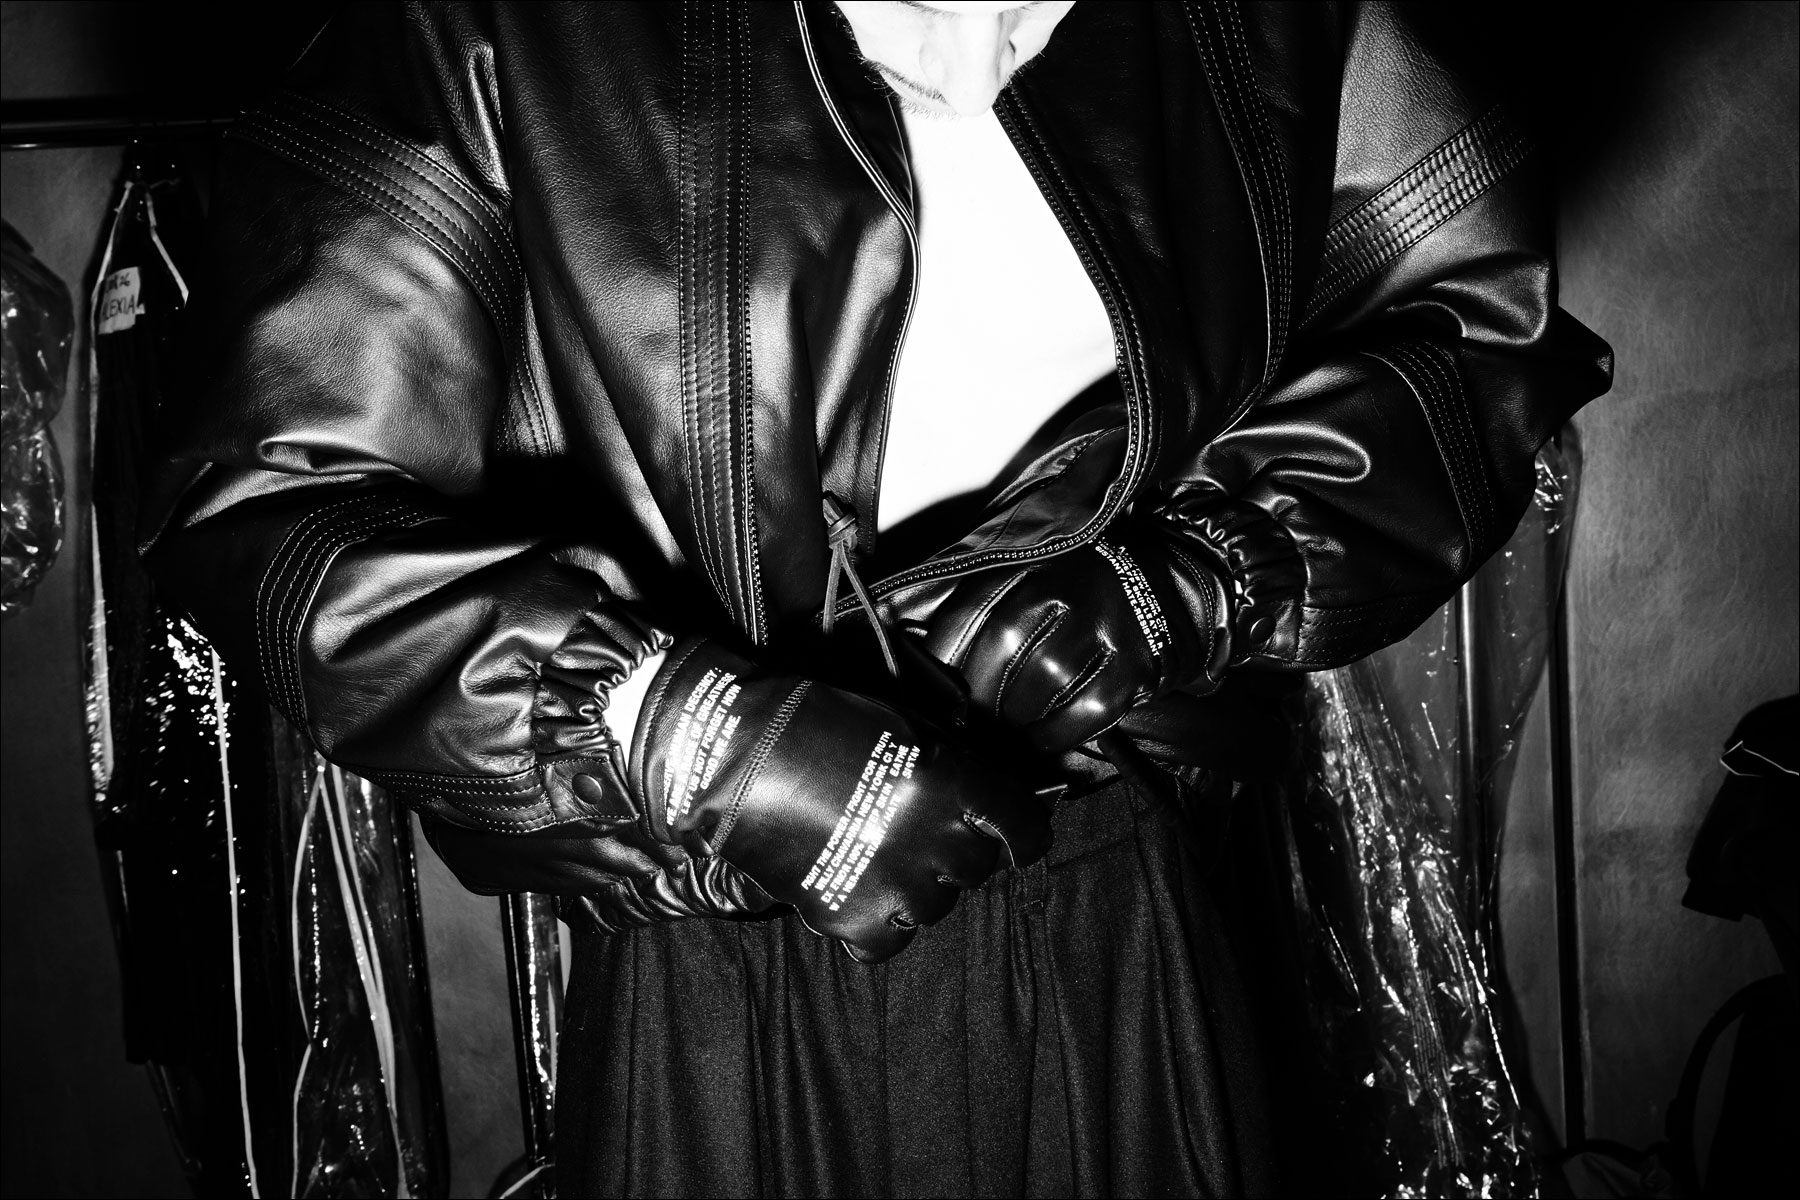 A model adjusts his leather jacket backstage at the Willy Chavarria menswear show for Fall 2018. Photography by Alexander Thompson for Ponyboy magazine.